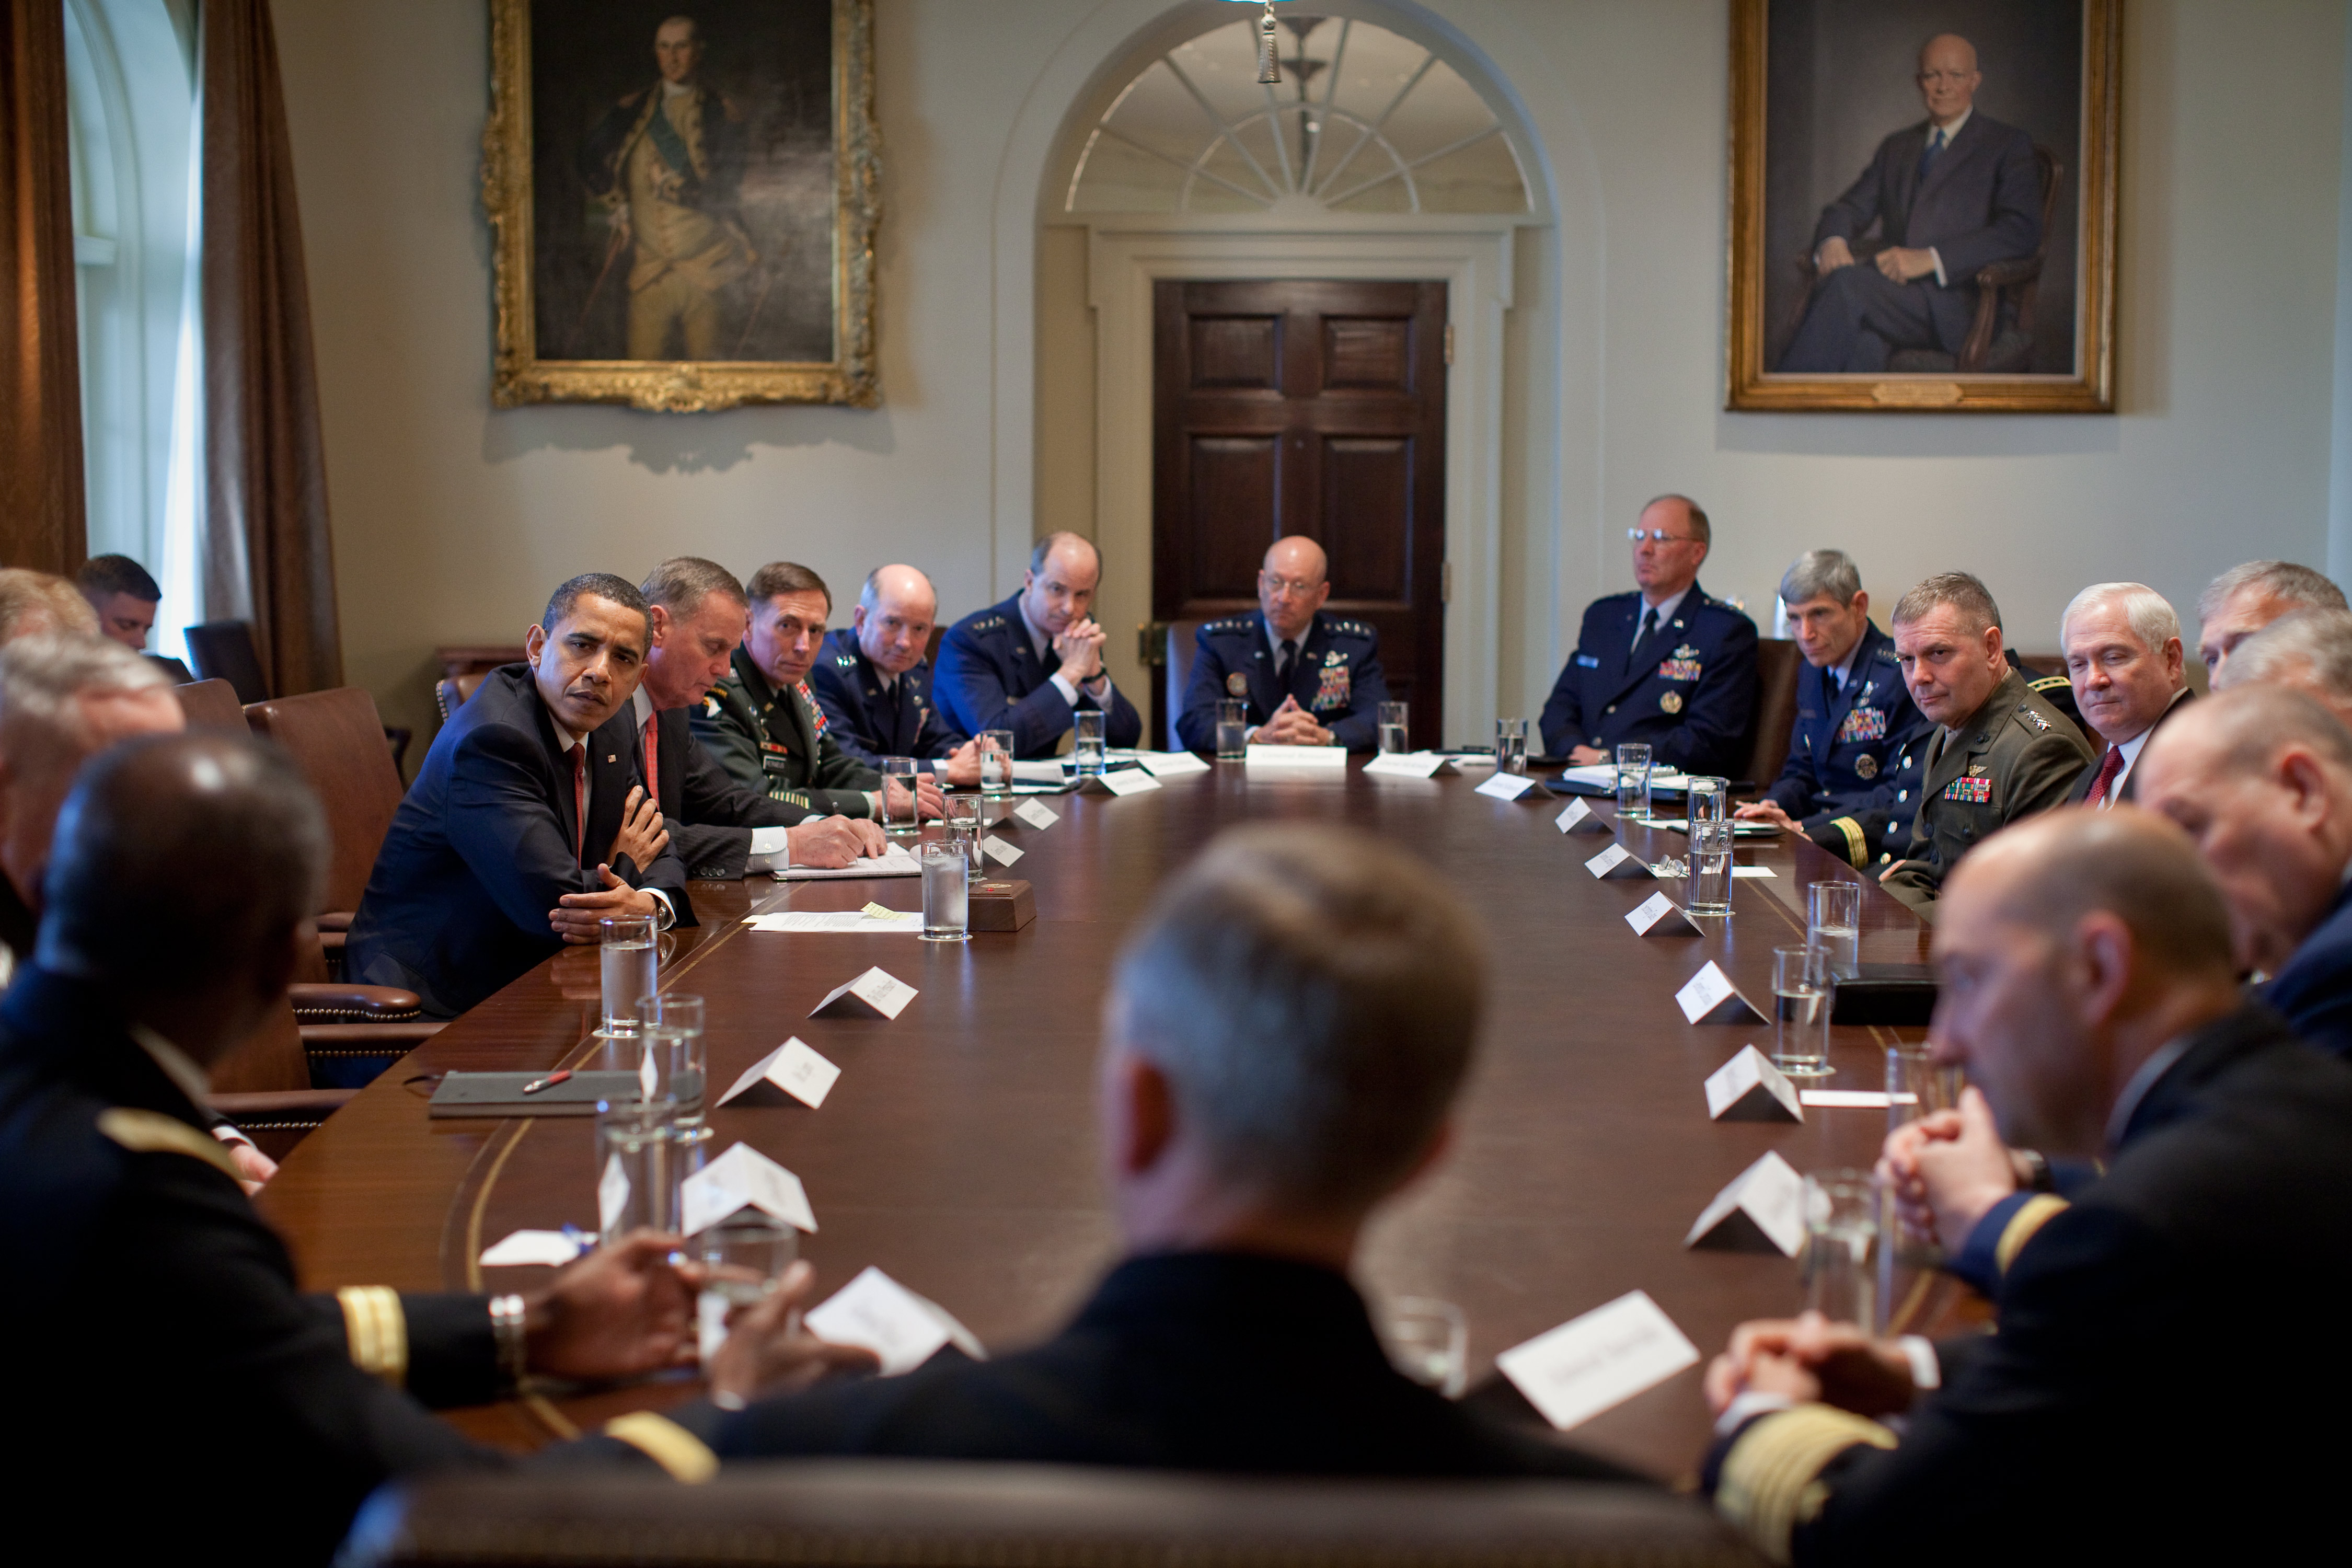 File:Barack Obama Meets Combatant Commanders In The Cabinet Room